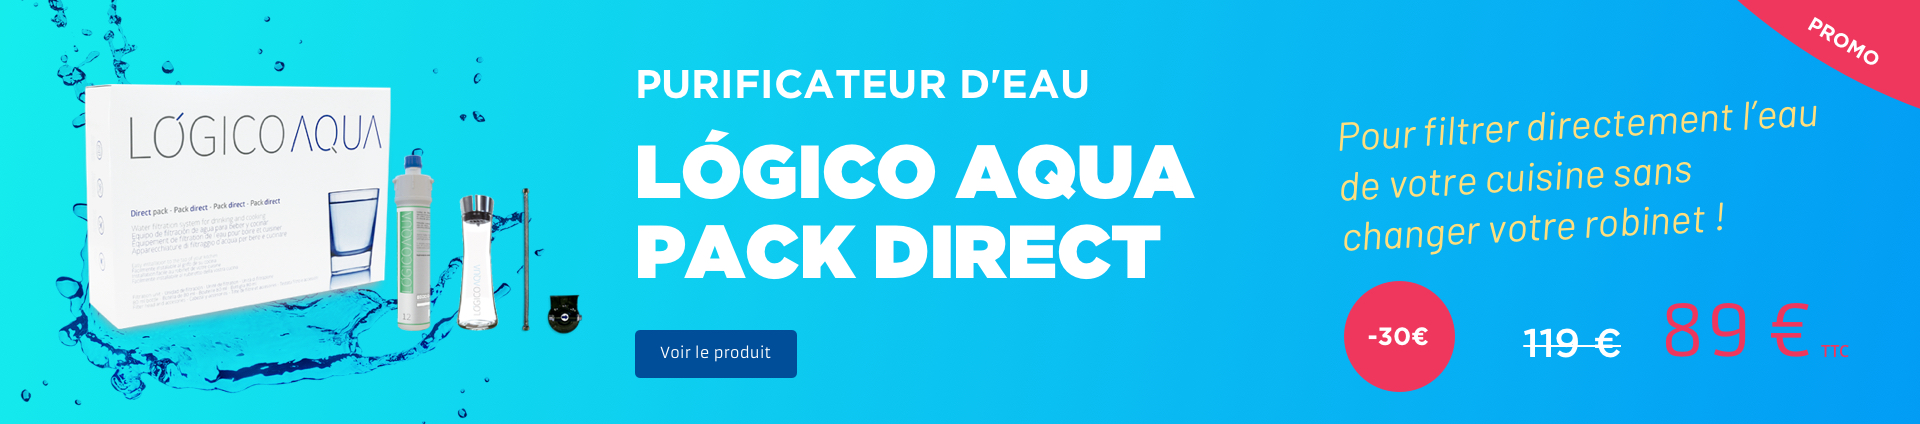 Diaporama promo Logico Aqua Pack Direct